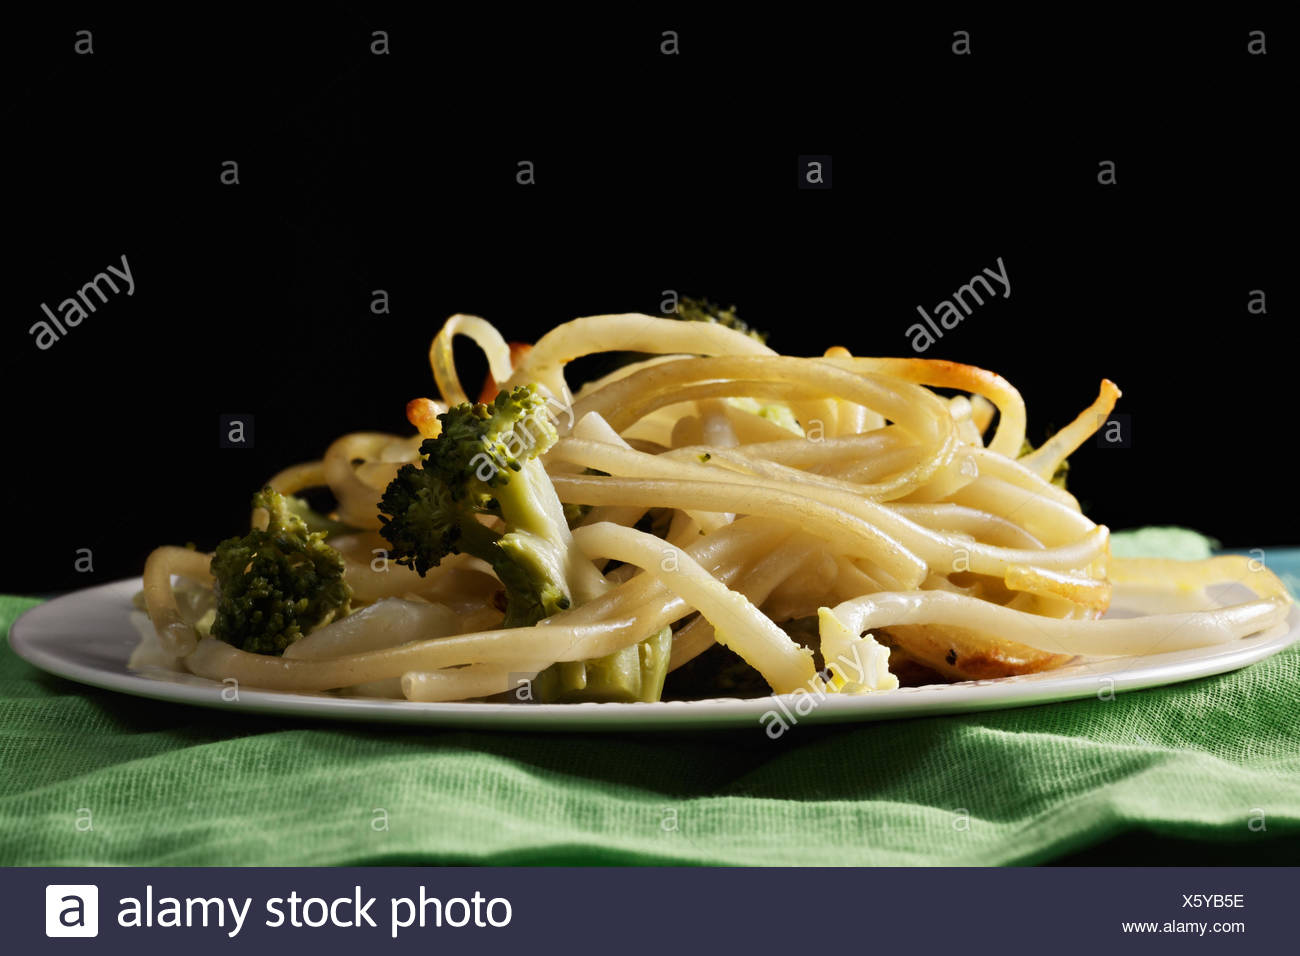 Pasta with broccoli in darkness - Stock Image